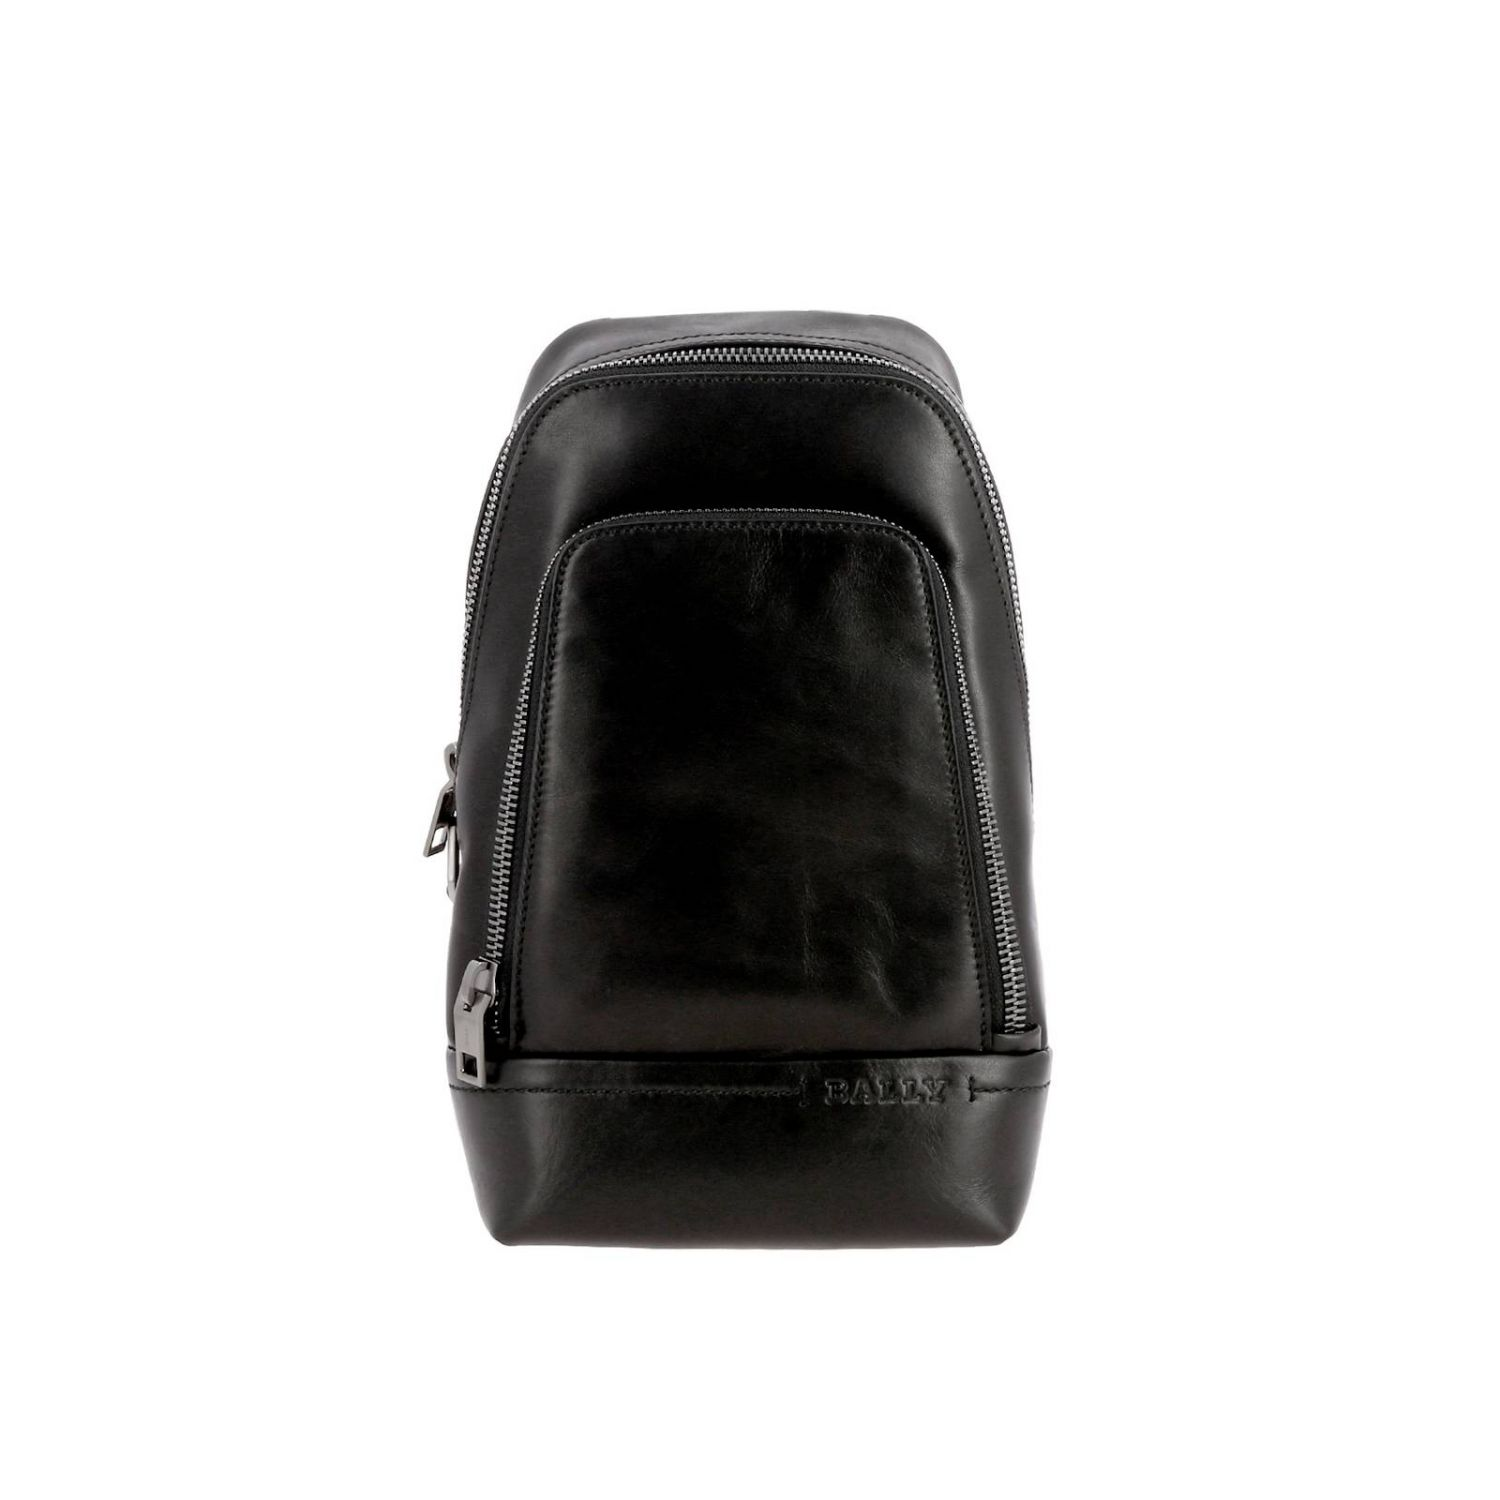 Thorp Bally one shoulder leather backpack with full zip black 1